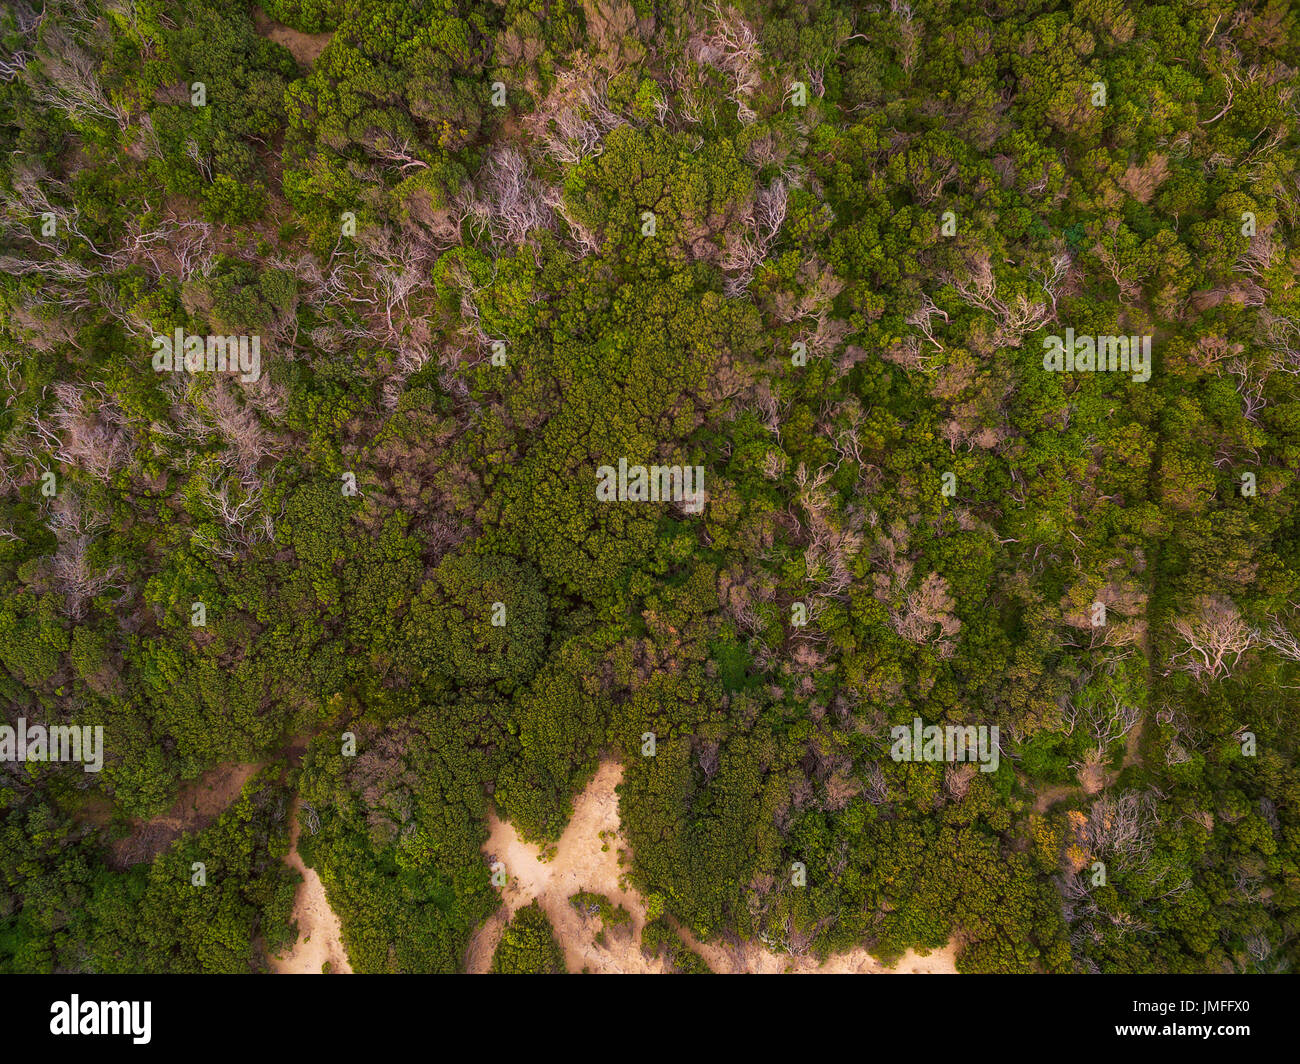 Aerial view looking straight down at green coastal vegetation tree tops - Stock Image